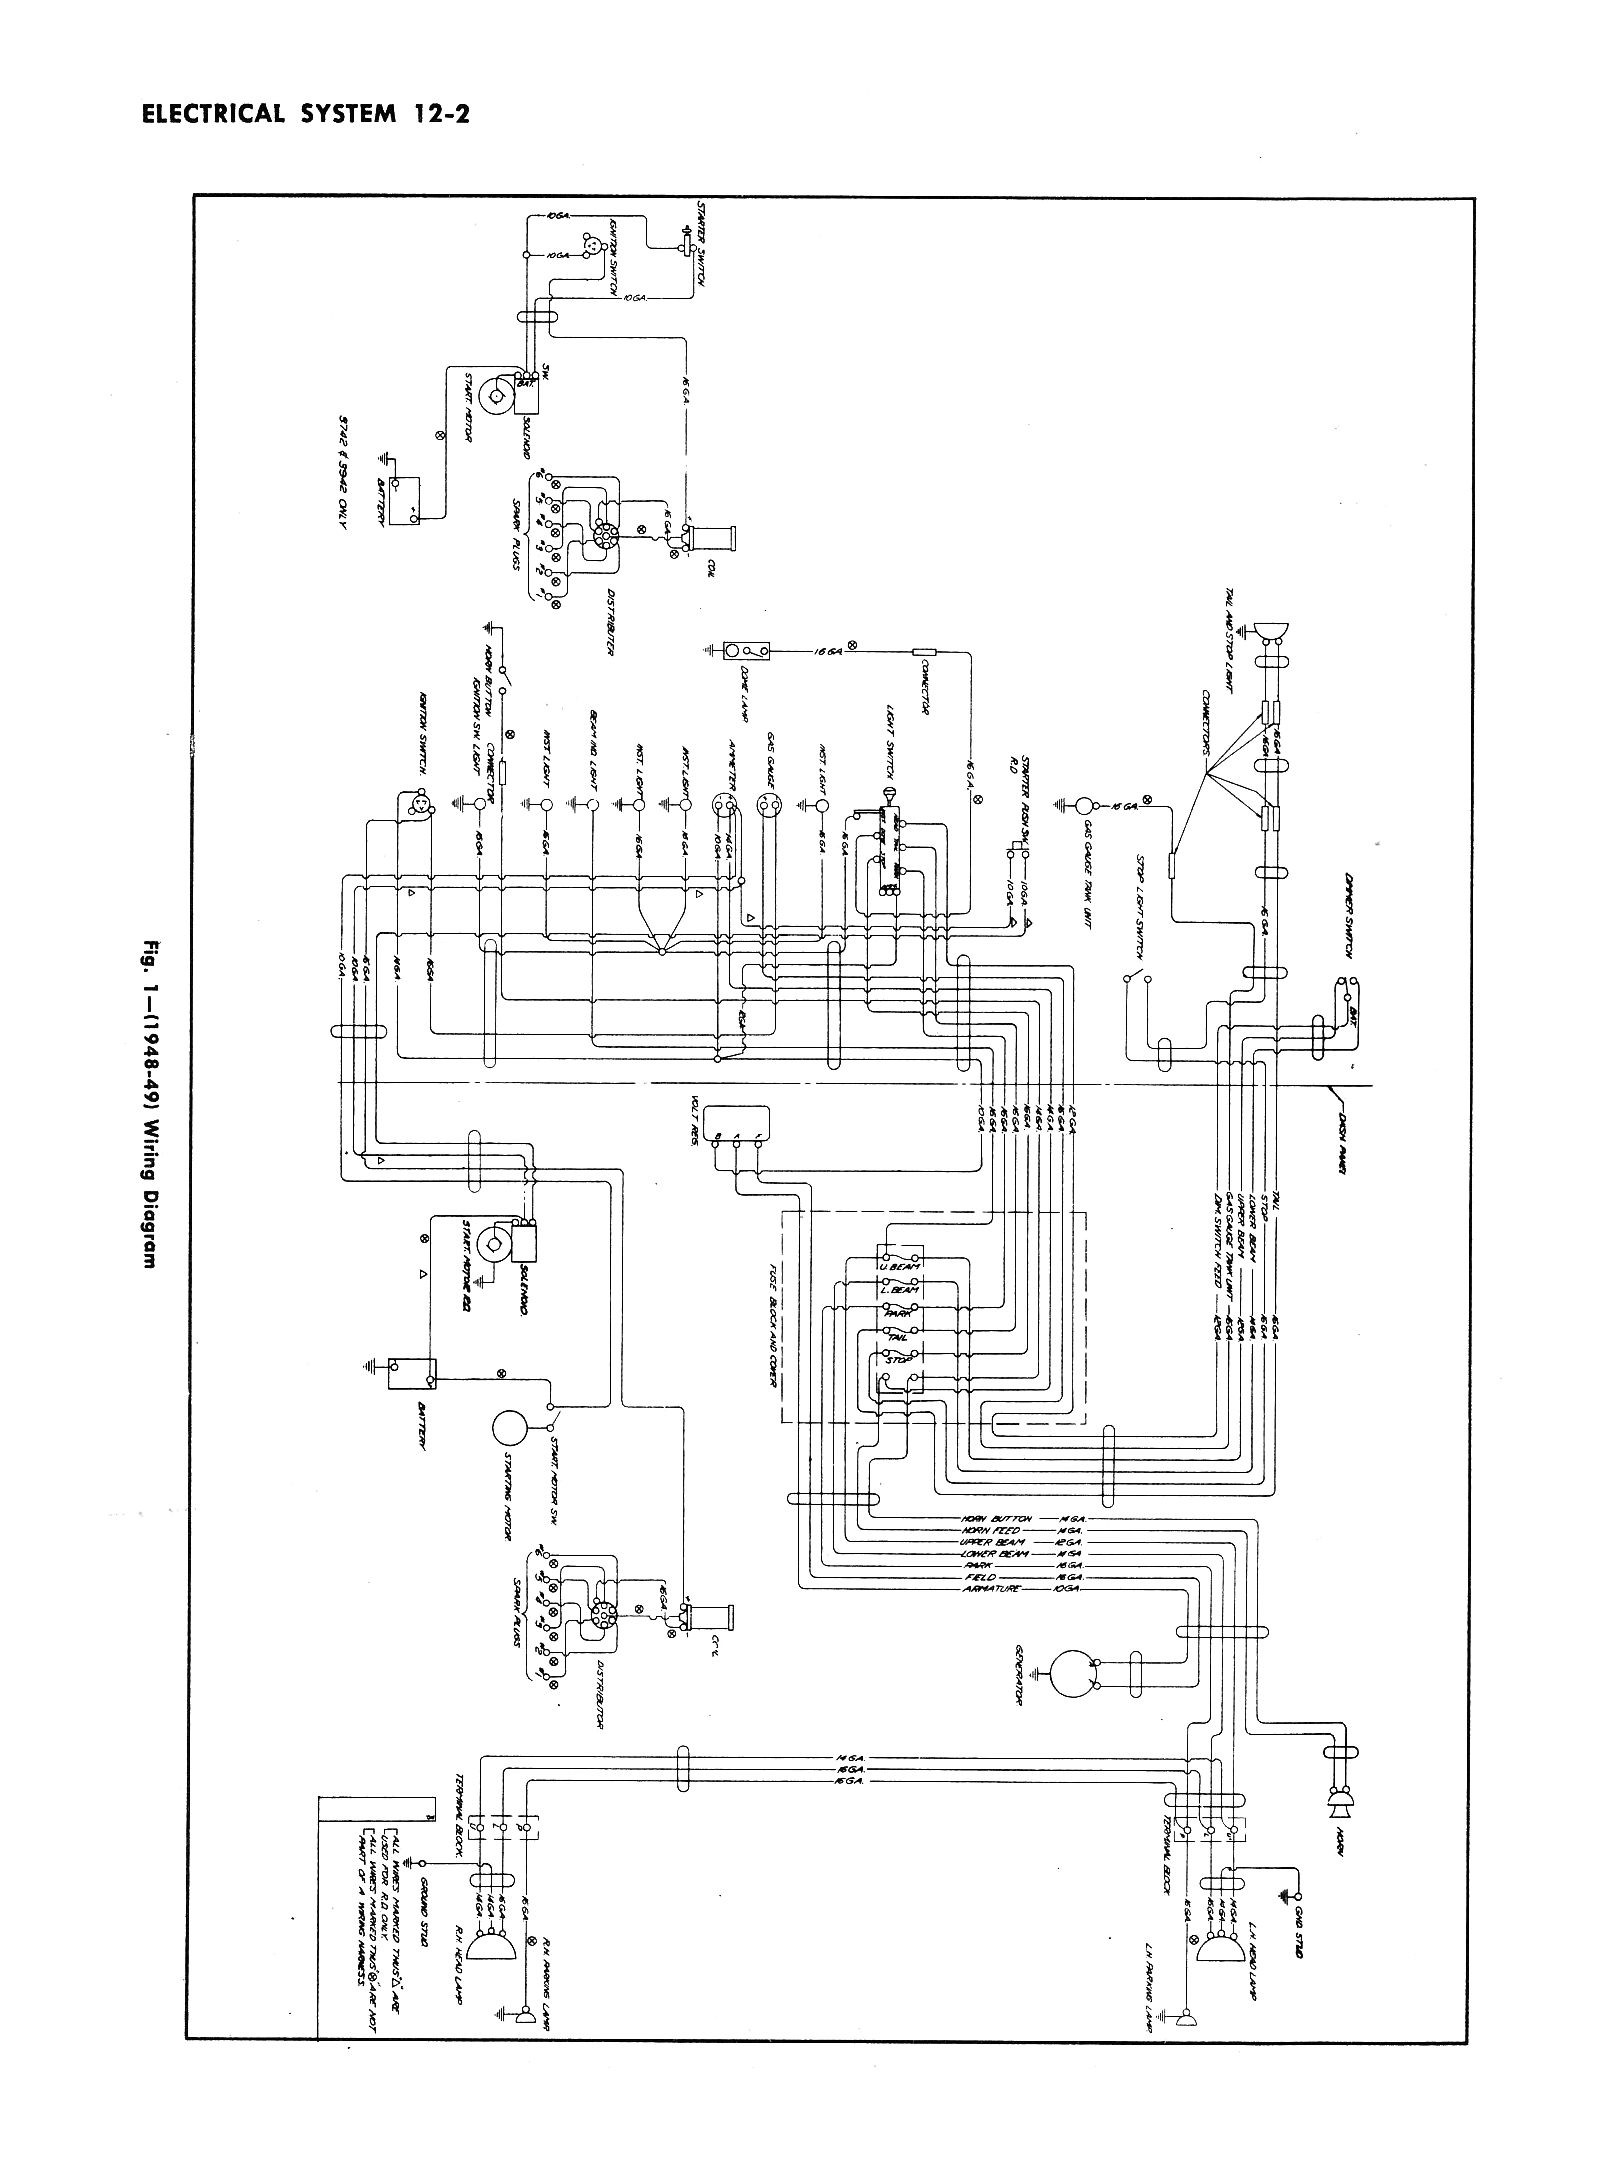 chevy wiring diagrams 1986 Corvette Wiring Diagram 2012 Corvette Wiring  Diagram. chevy wiring diagrams 1956 Bel Air ...